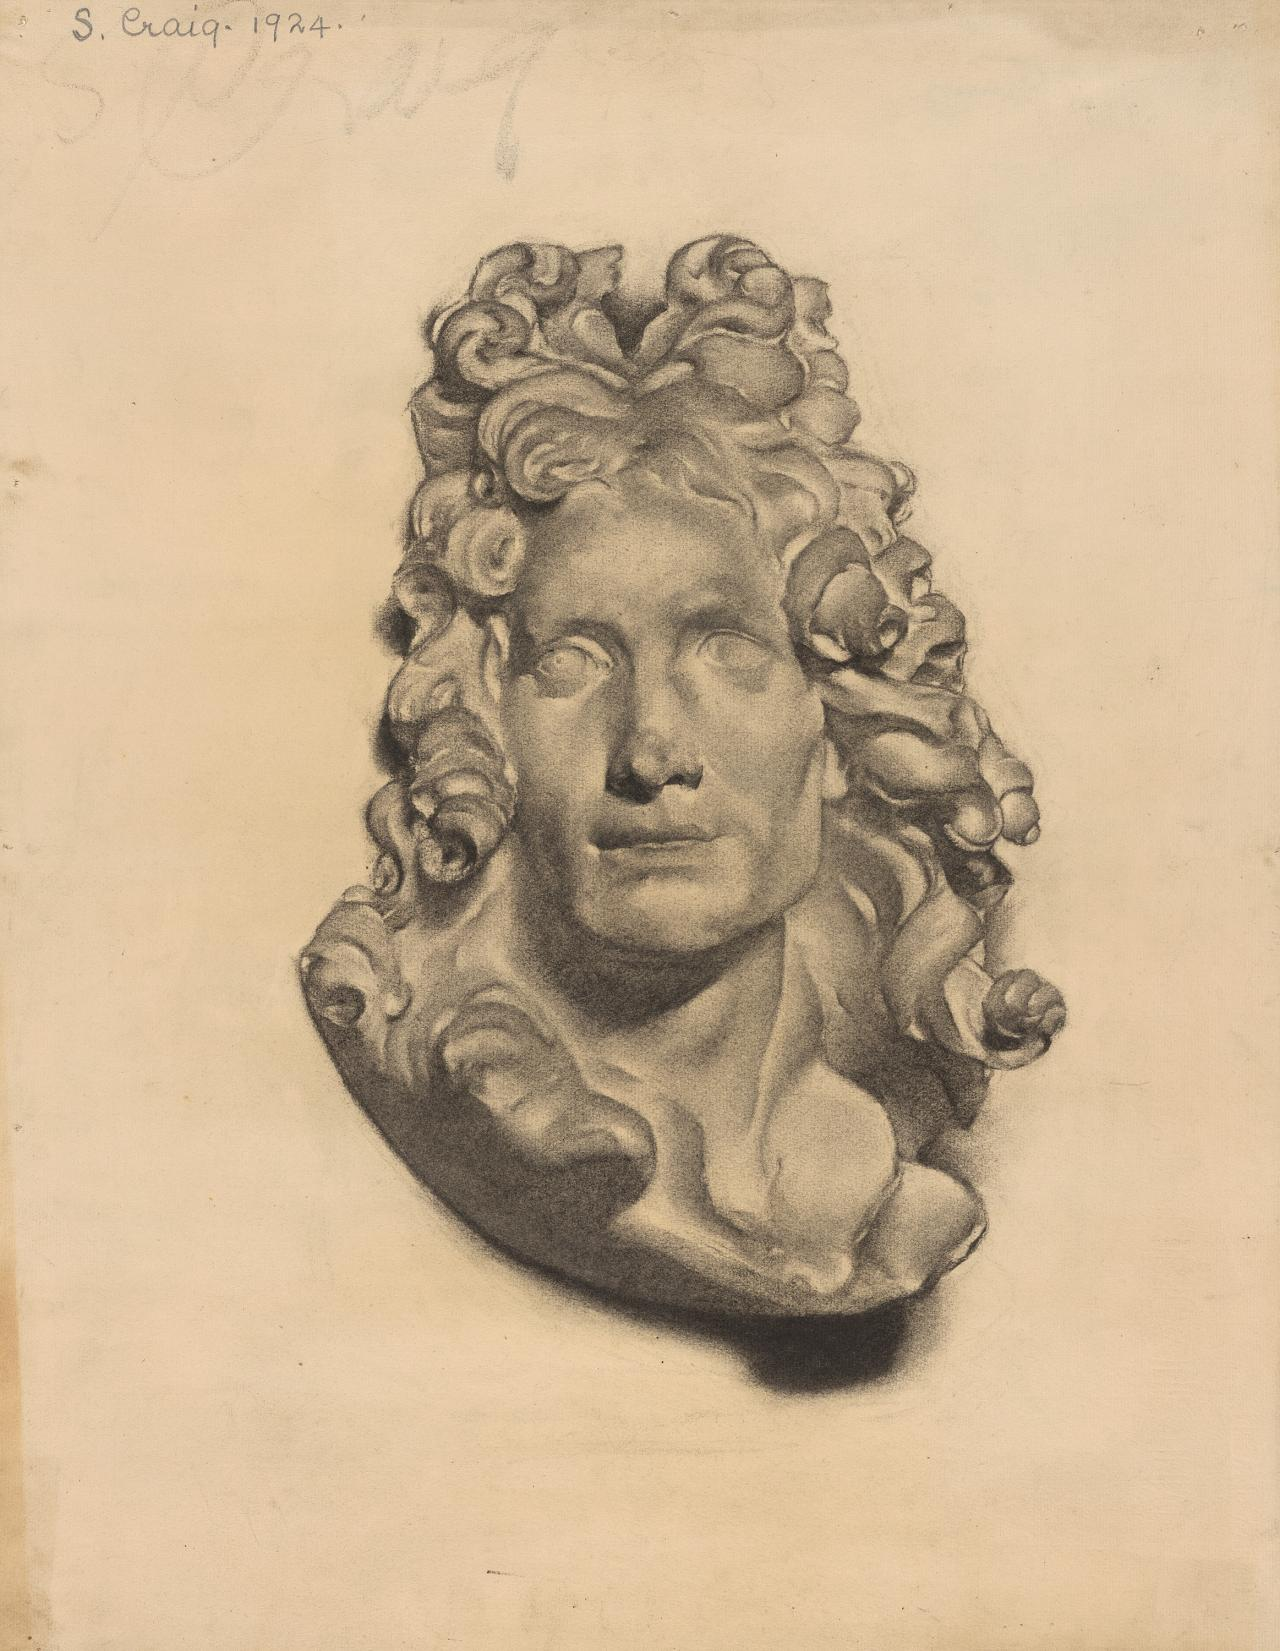 Plaster head of a man with curled hair